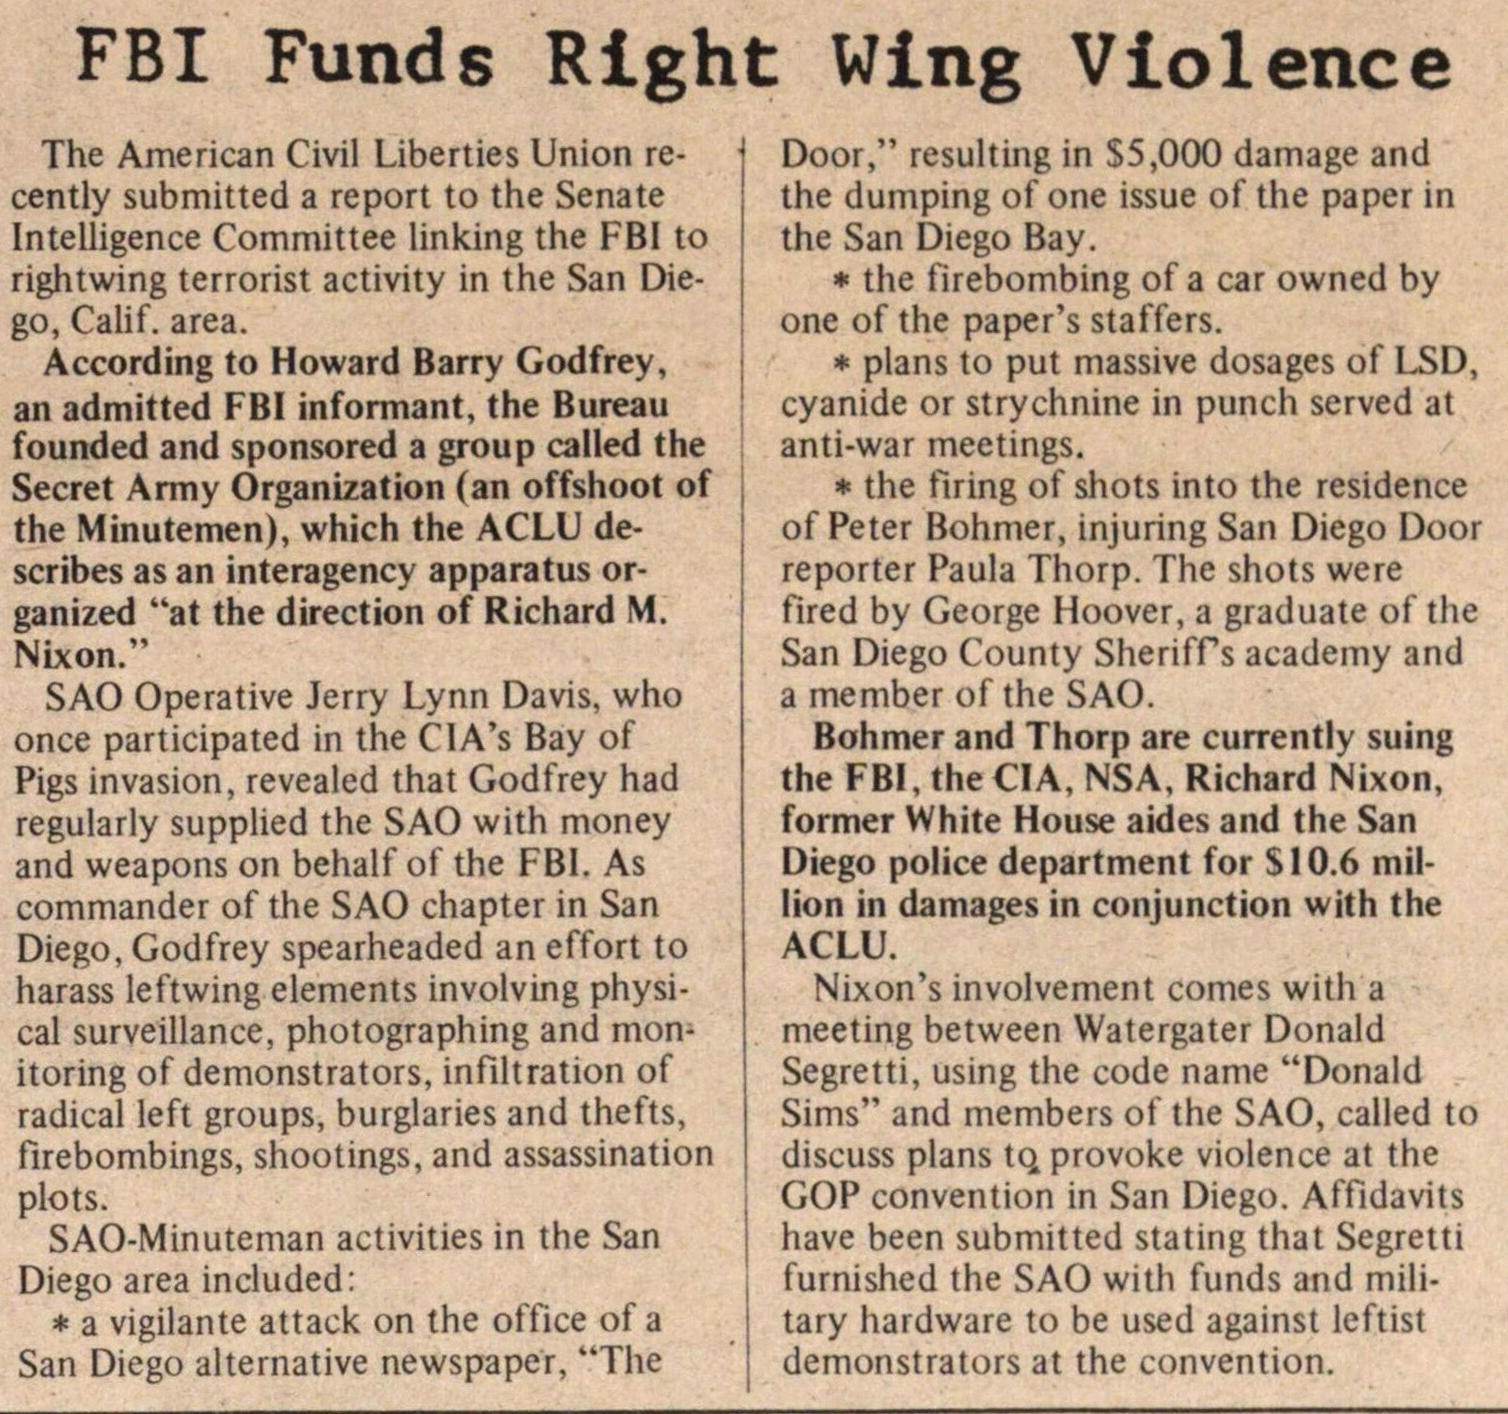 Fbi Funds Right Wing Violence image